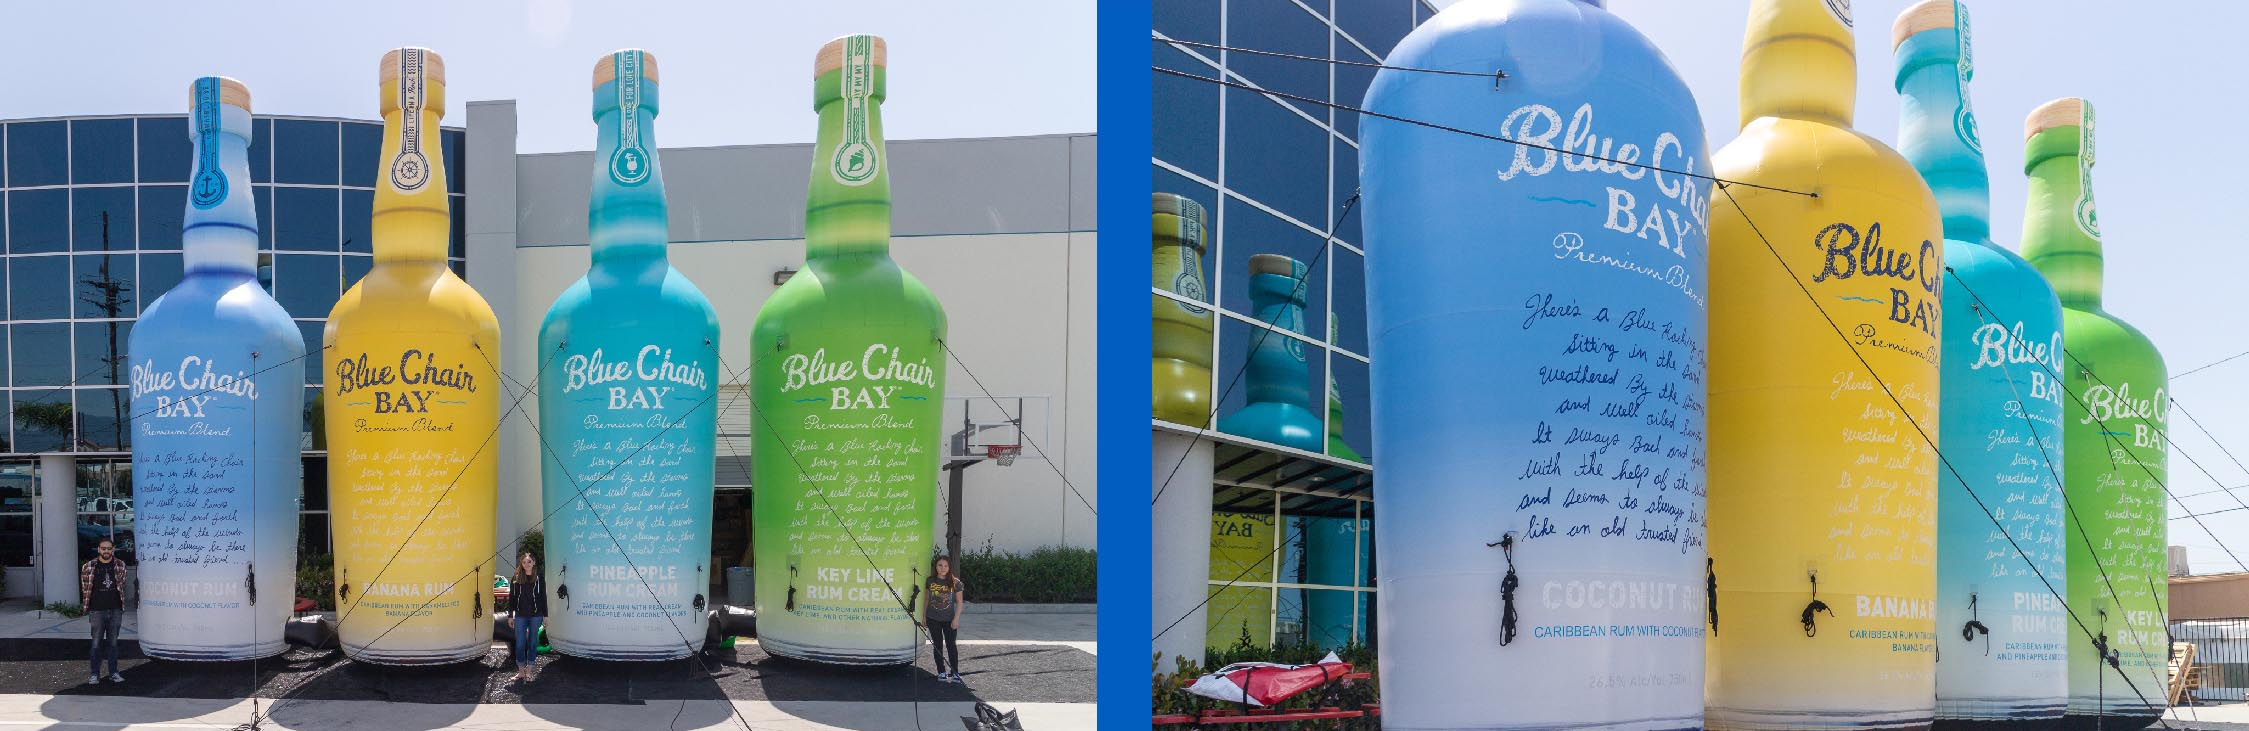 inflatable-blue-chair-bay-bottles